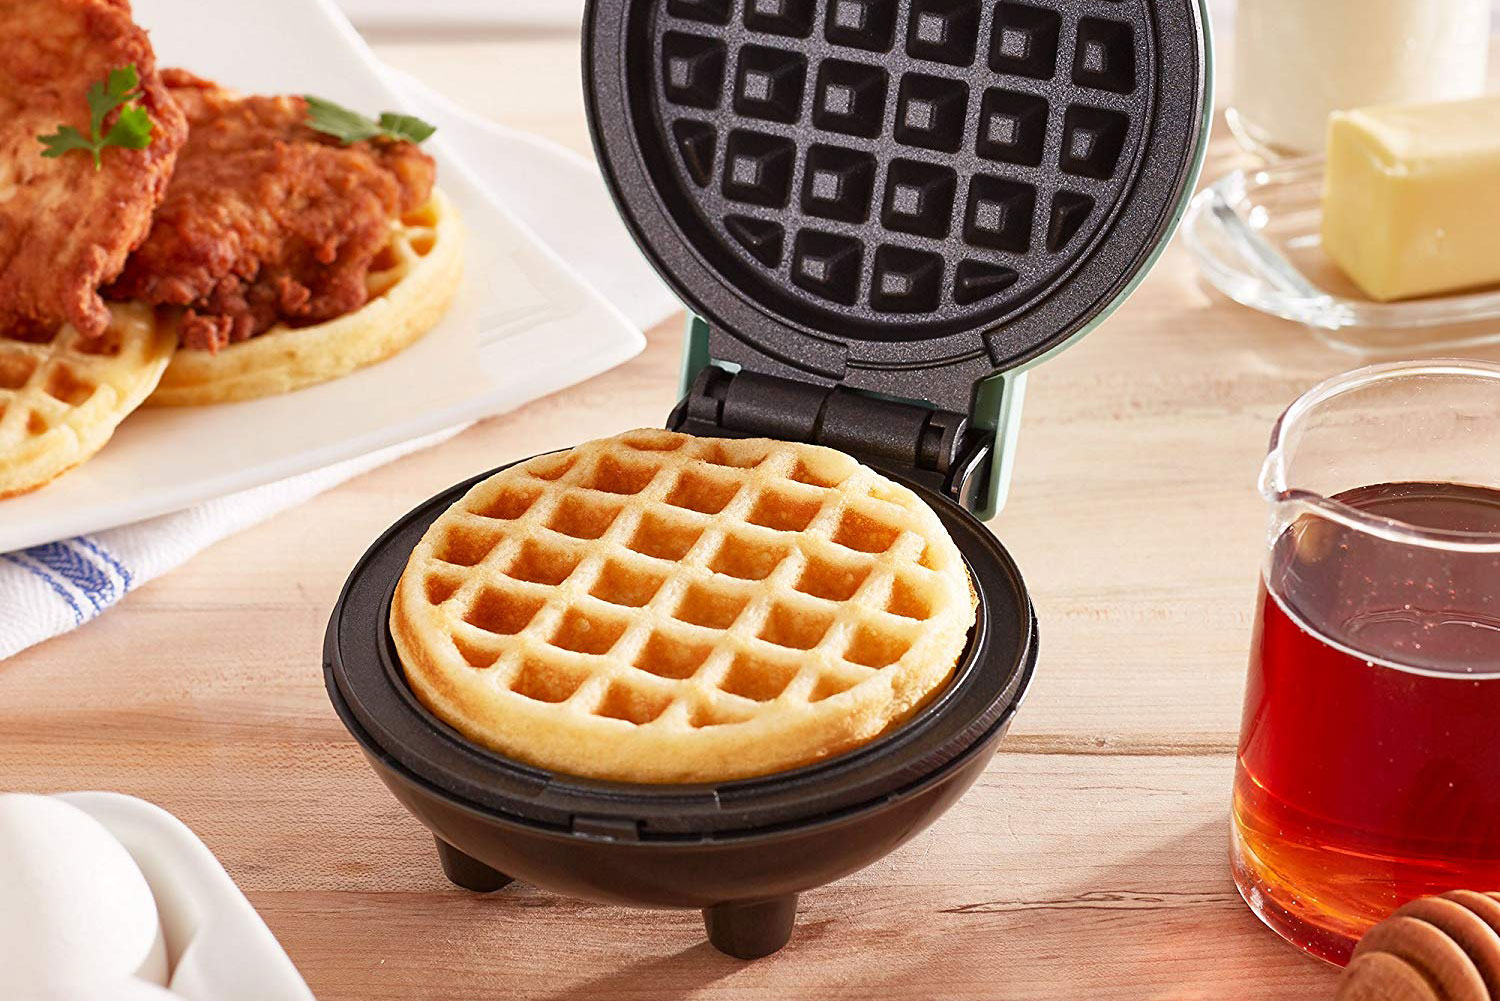 A waffle-maker sits on a table